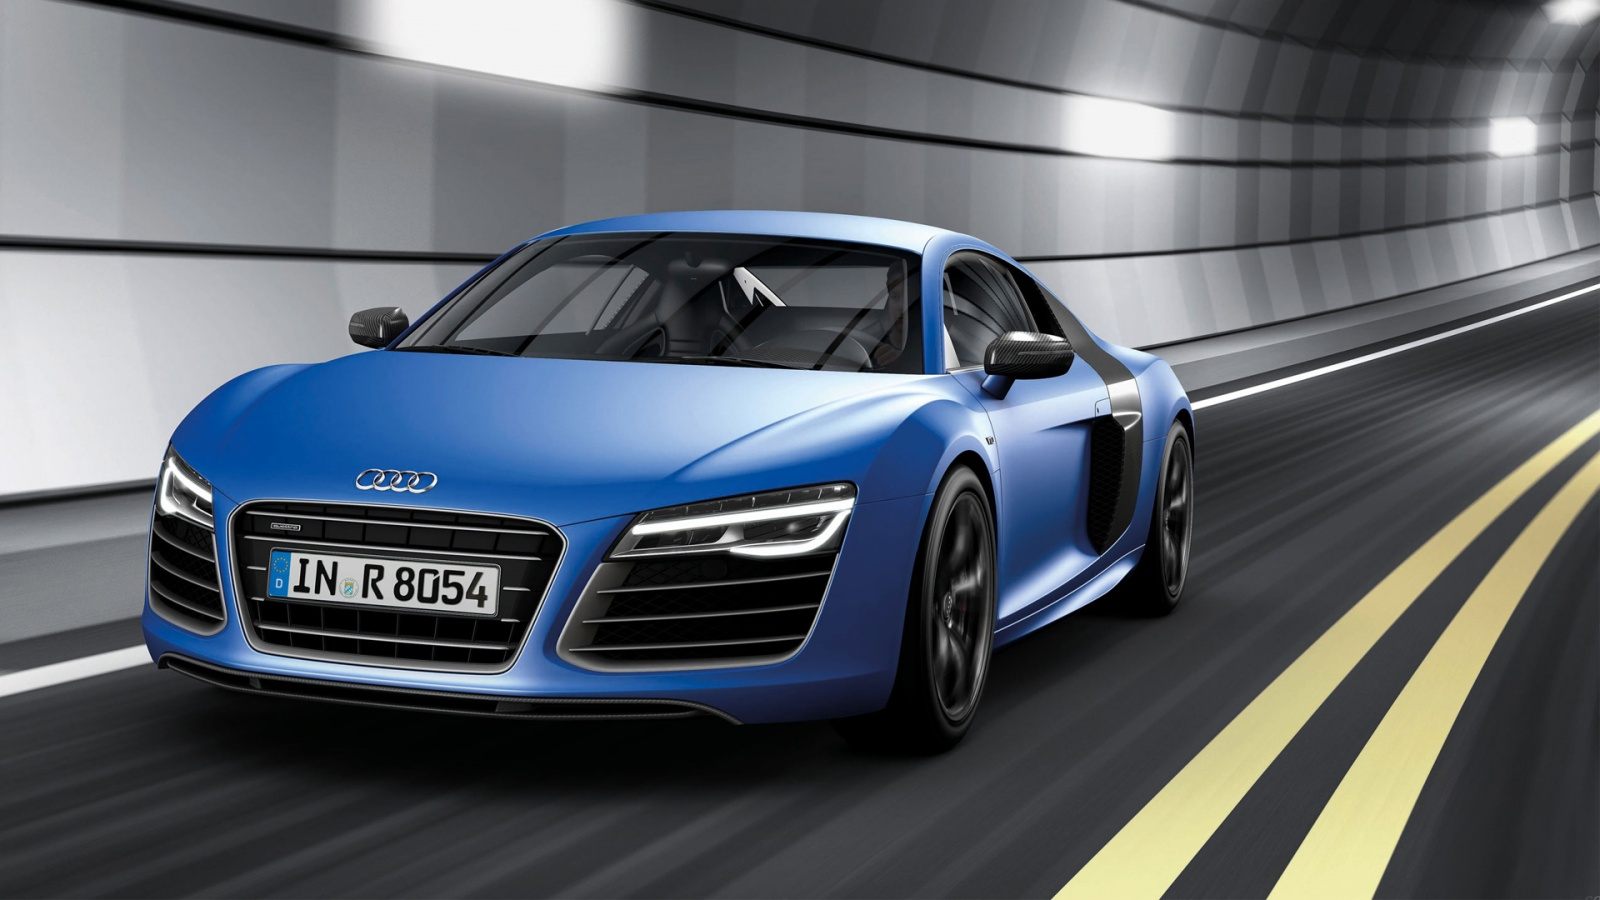 2013 Audi R8 V8 Wallpapers In Jpg Format For Free Download